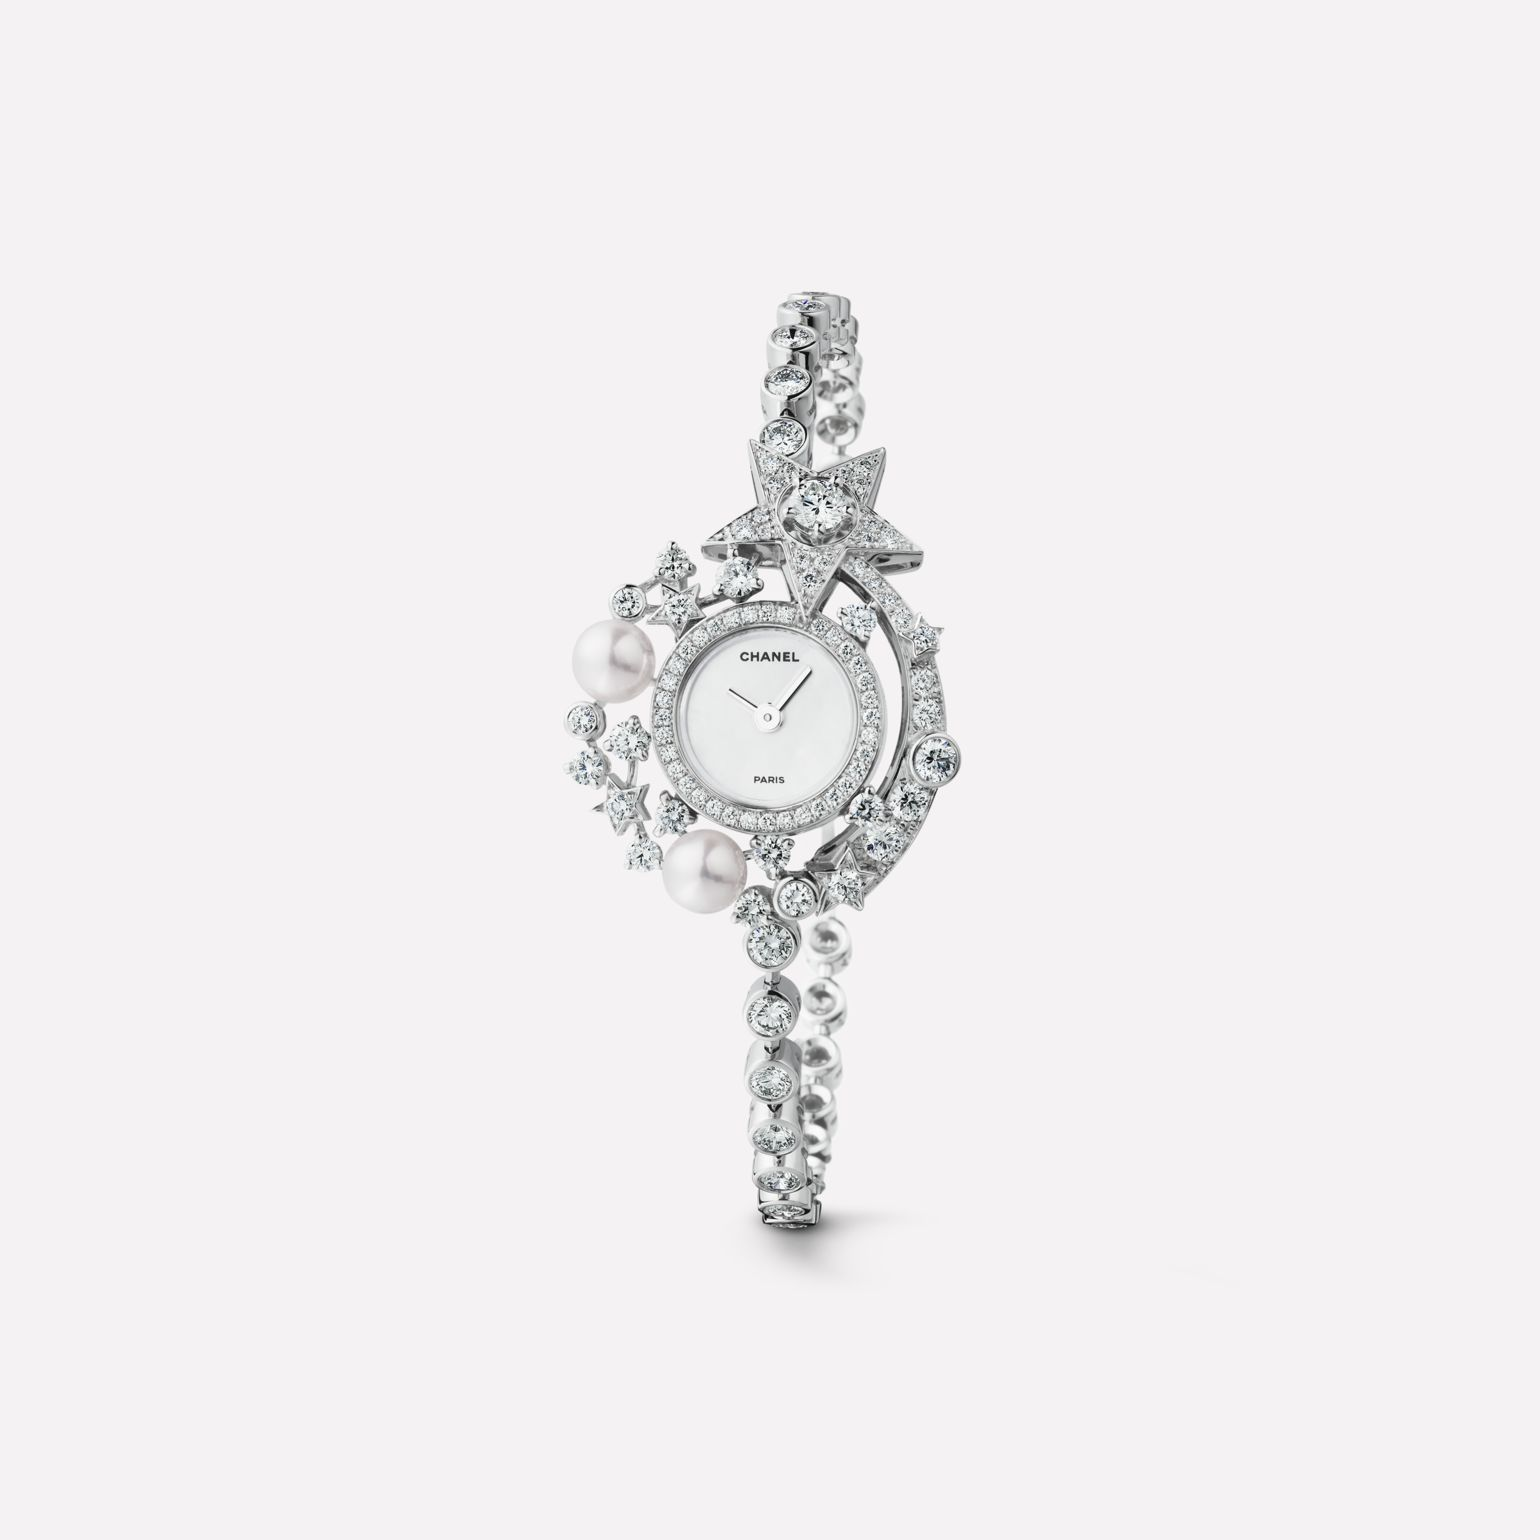 Comète Jewellery Watch Star motif in 18K white gold, diamonds and cultured pearls